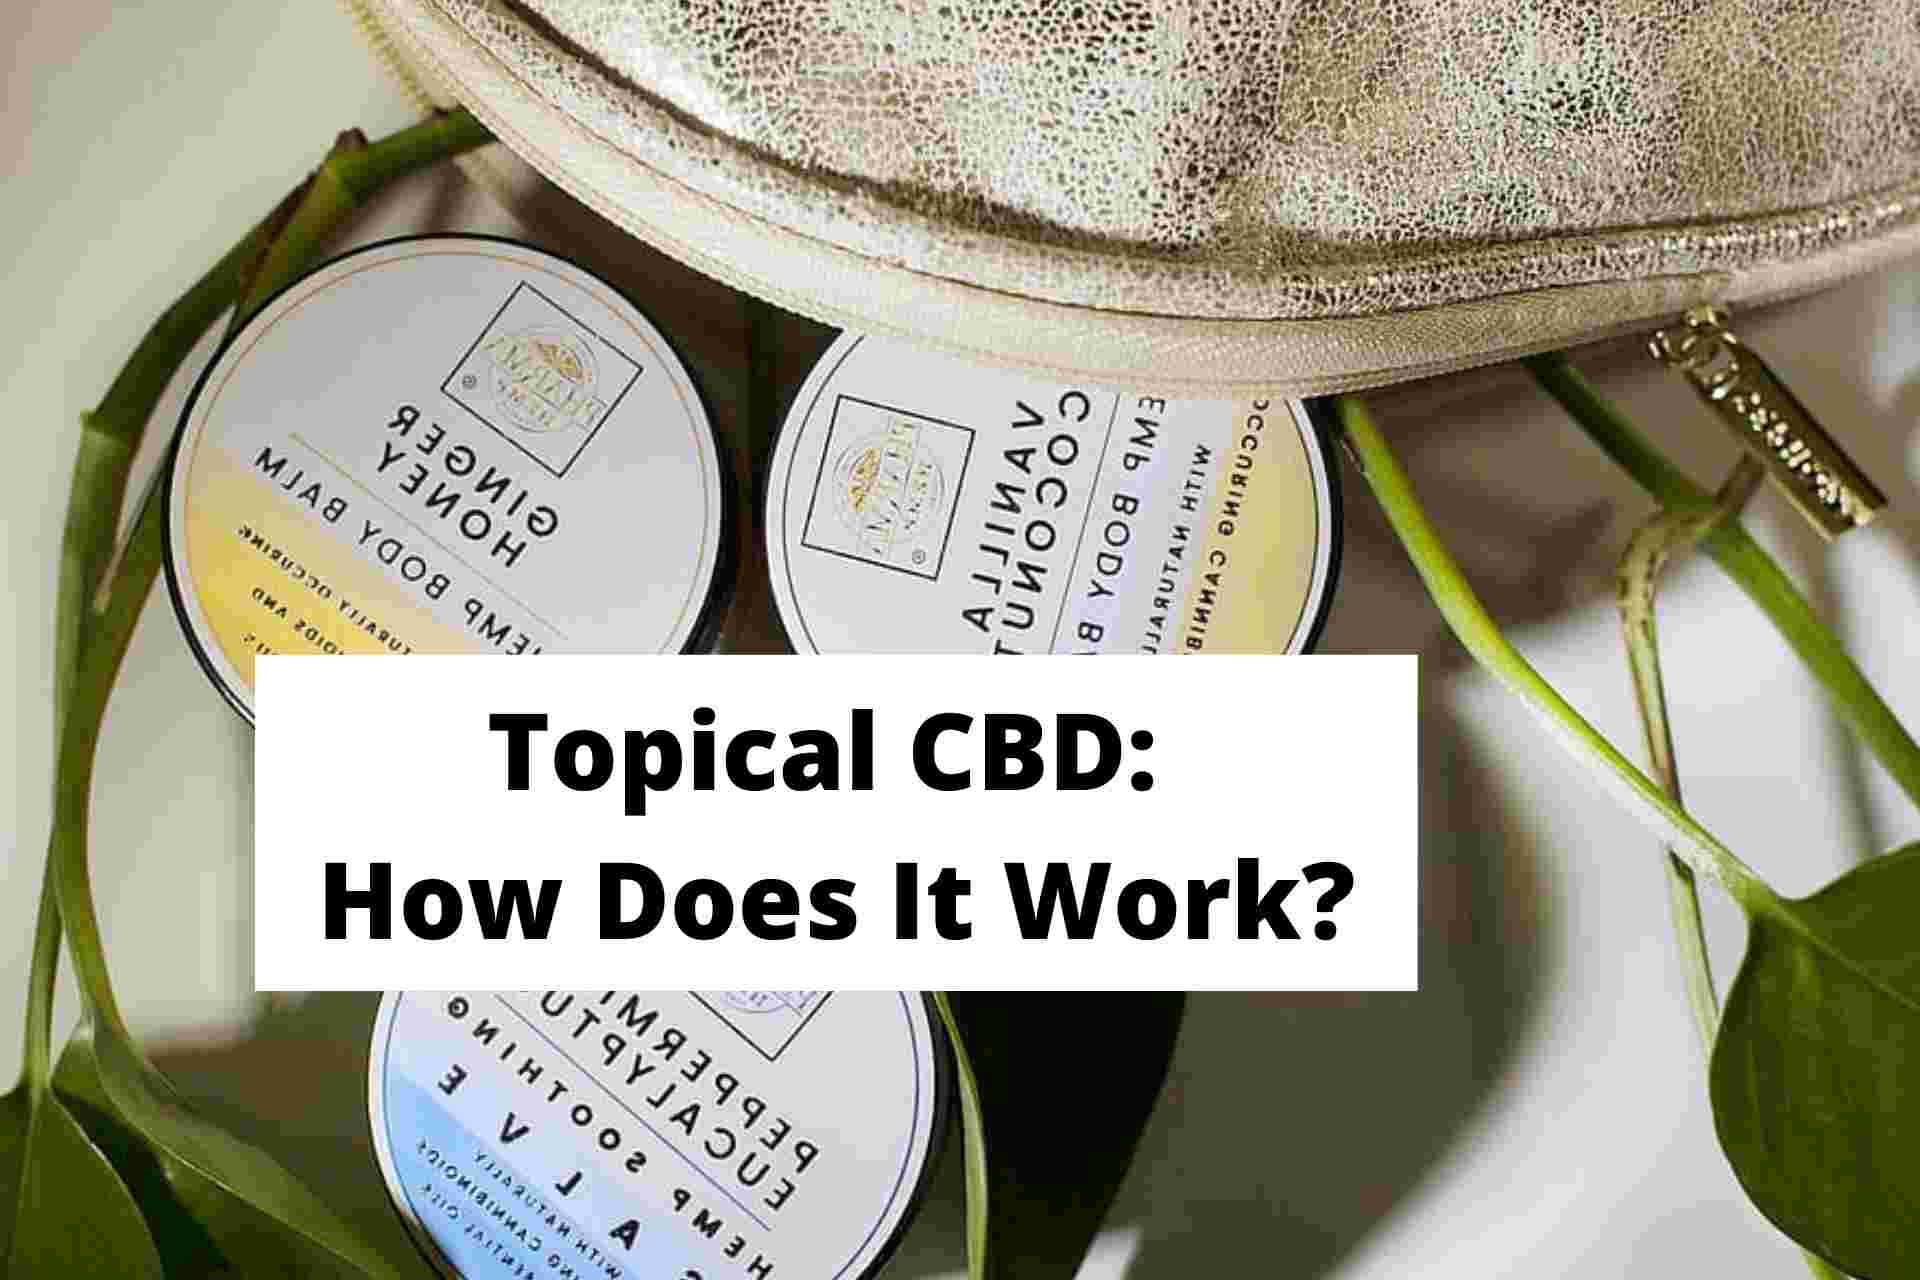 Topical CBD: How Does It Work?